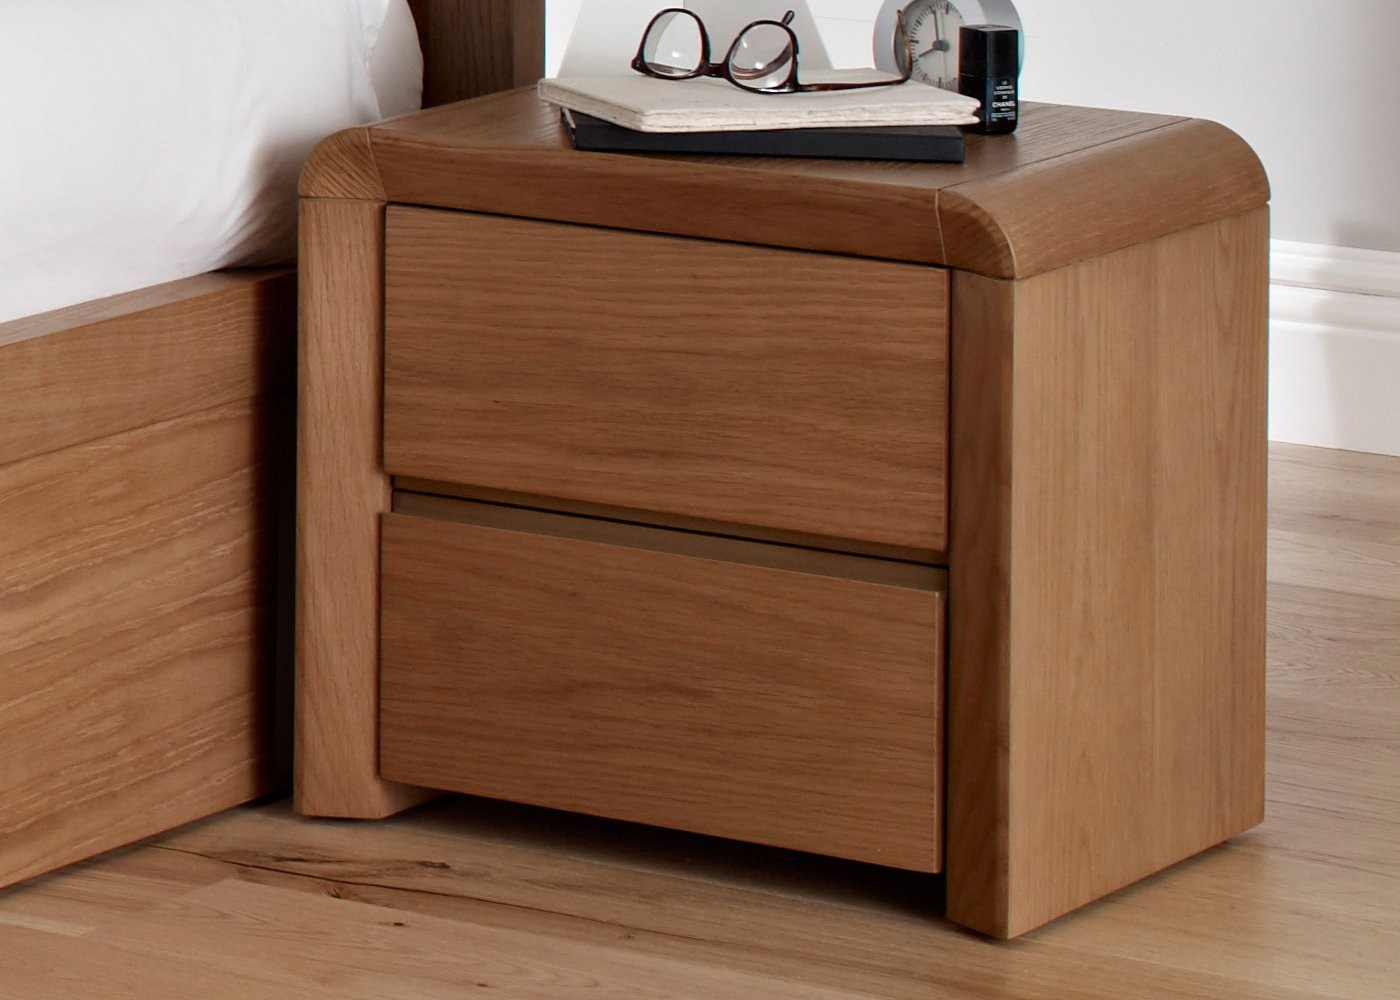 Incredible Design Of The Bed Side Tables With Brown Oak Wooden Color Materials Added With Brown Wooden Floor And Bed Ideas